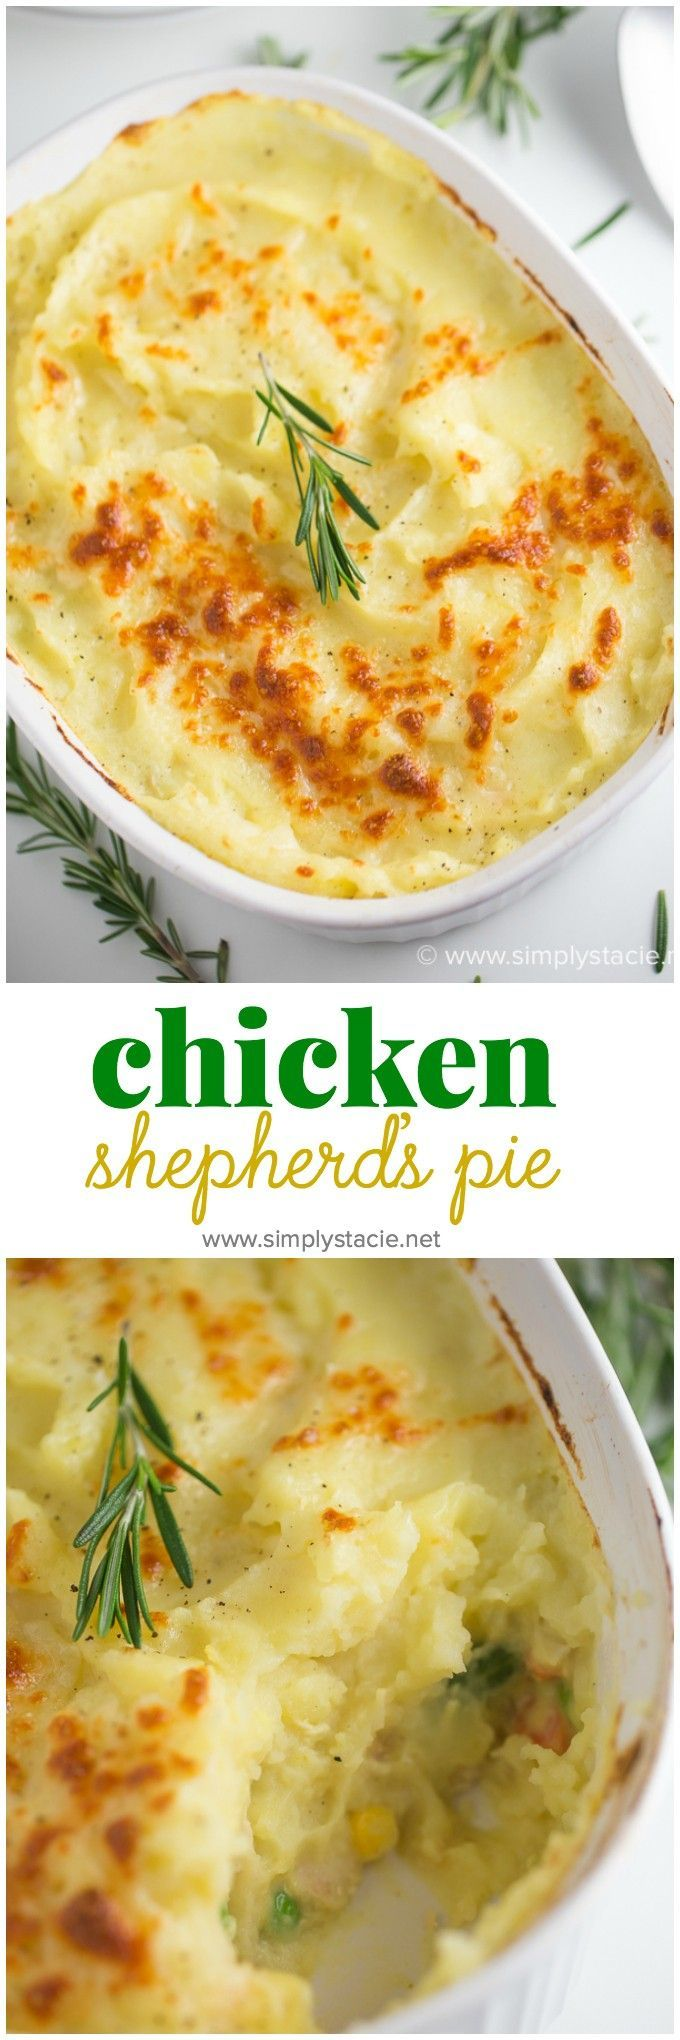 Chicken Shepherd's Pie - Not your mama's Shepherd Pie! This version is made with a creamy curry sauce that is out of this world. Topped with a heavenly layer of mashed potatoes and Parmesan cheese, this comfort food recipe will not last long. : simplystacie